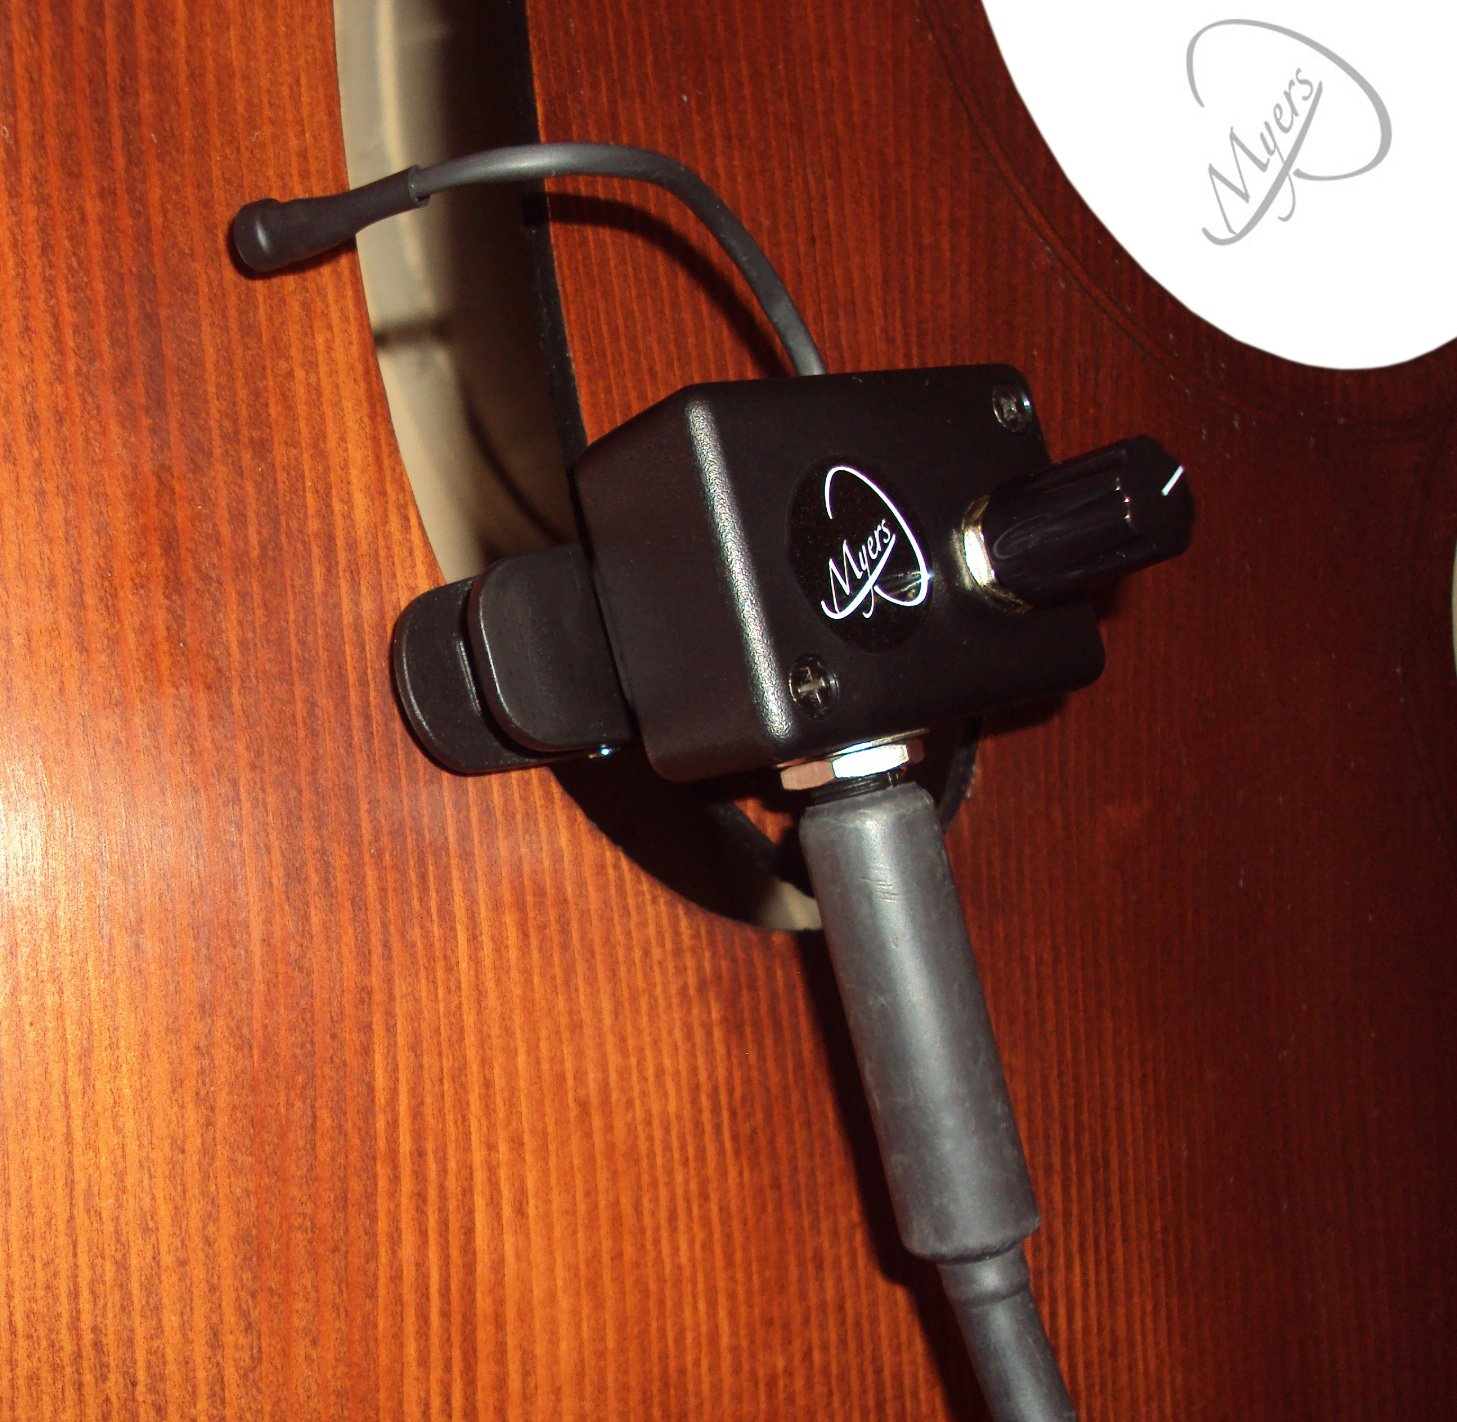 JAZZ UPRIGHT BASS MICROPHONE with 6 FLEXIBLE MICRO-GOOSE NECK by Myers Pickups ~ See it in ACTION! Copy and paste: myerspickups.com, Upright Bass Microphone